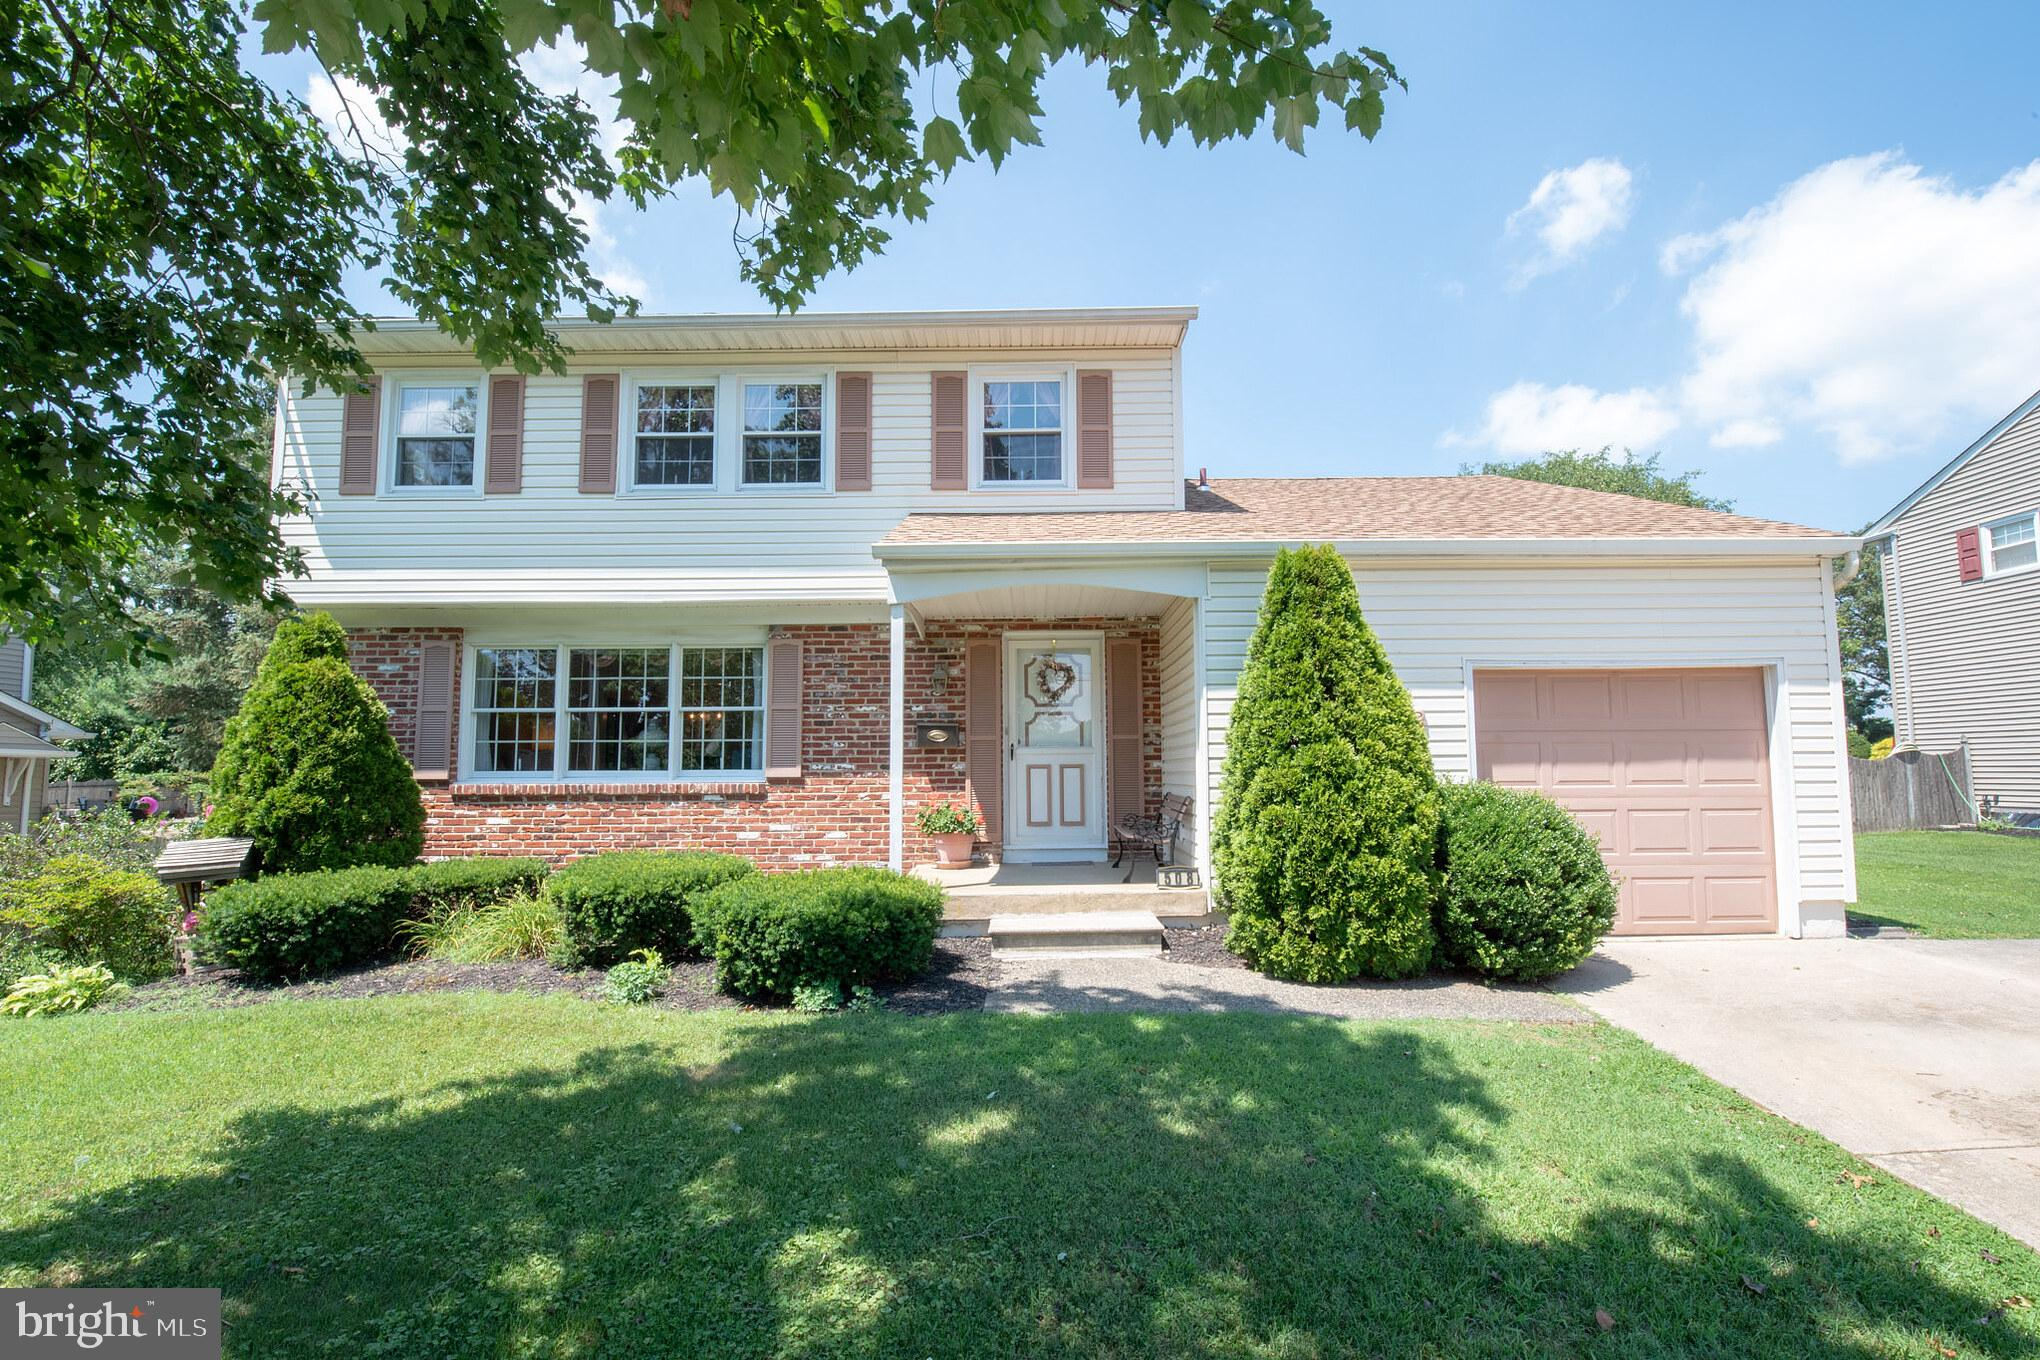 508 COLUMBIA AVENUE, PITMAN, NJ 08071